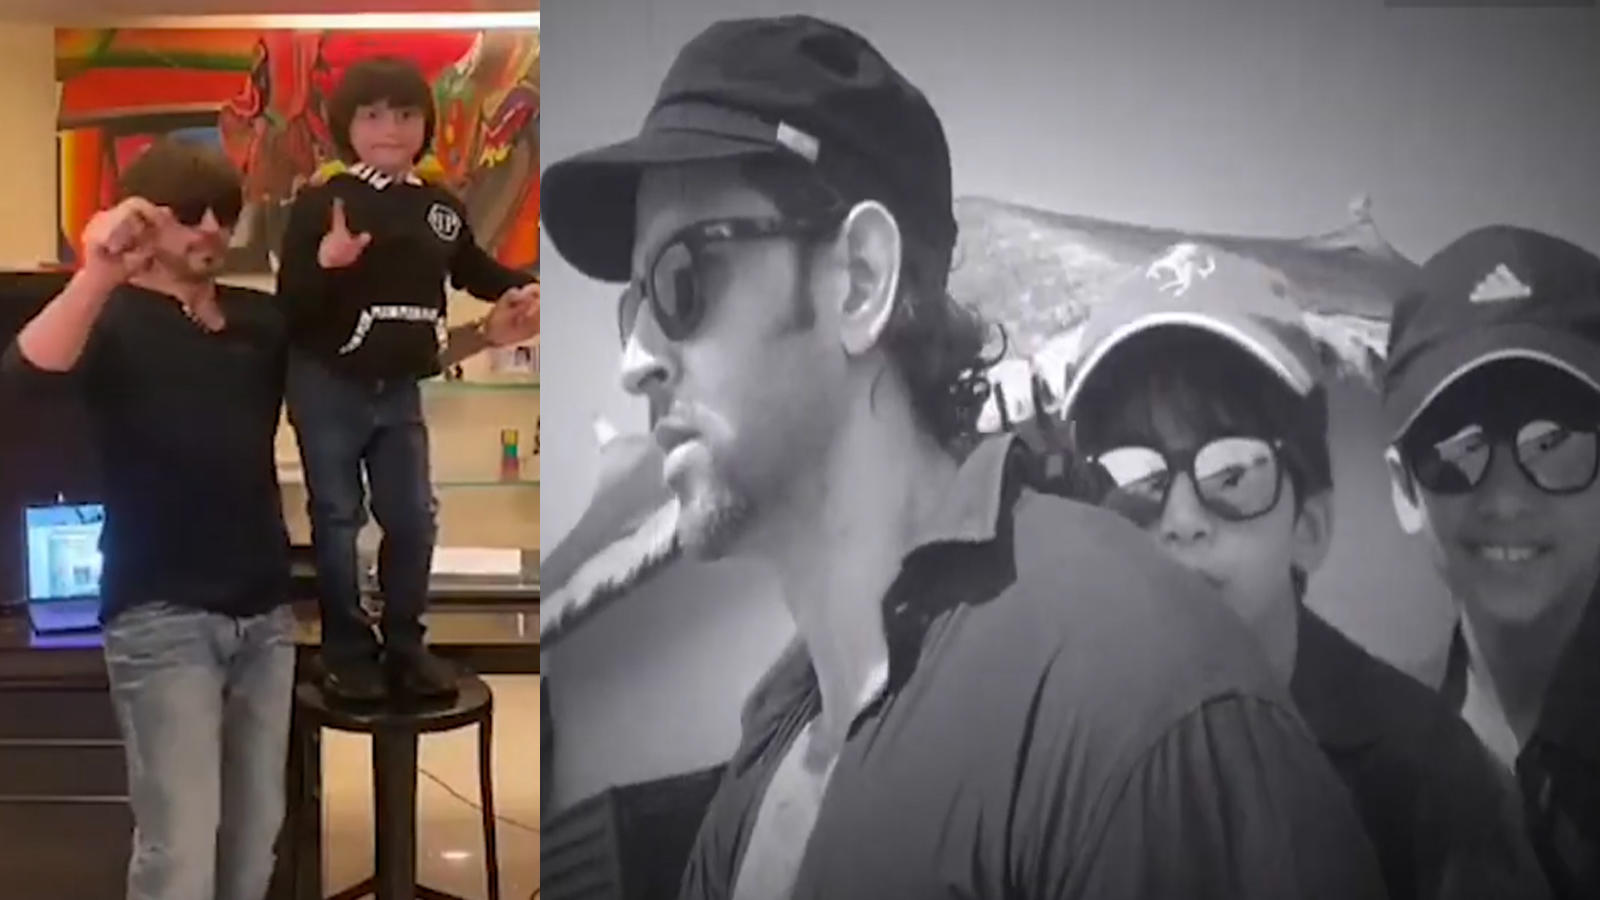 from-hrithik-roshan-to-saif-ali-khan-to-akshay-kumar-watch-priceless-throwback-videos-of-these-b-town-dads-with-their-kids